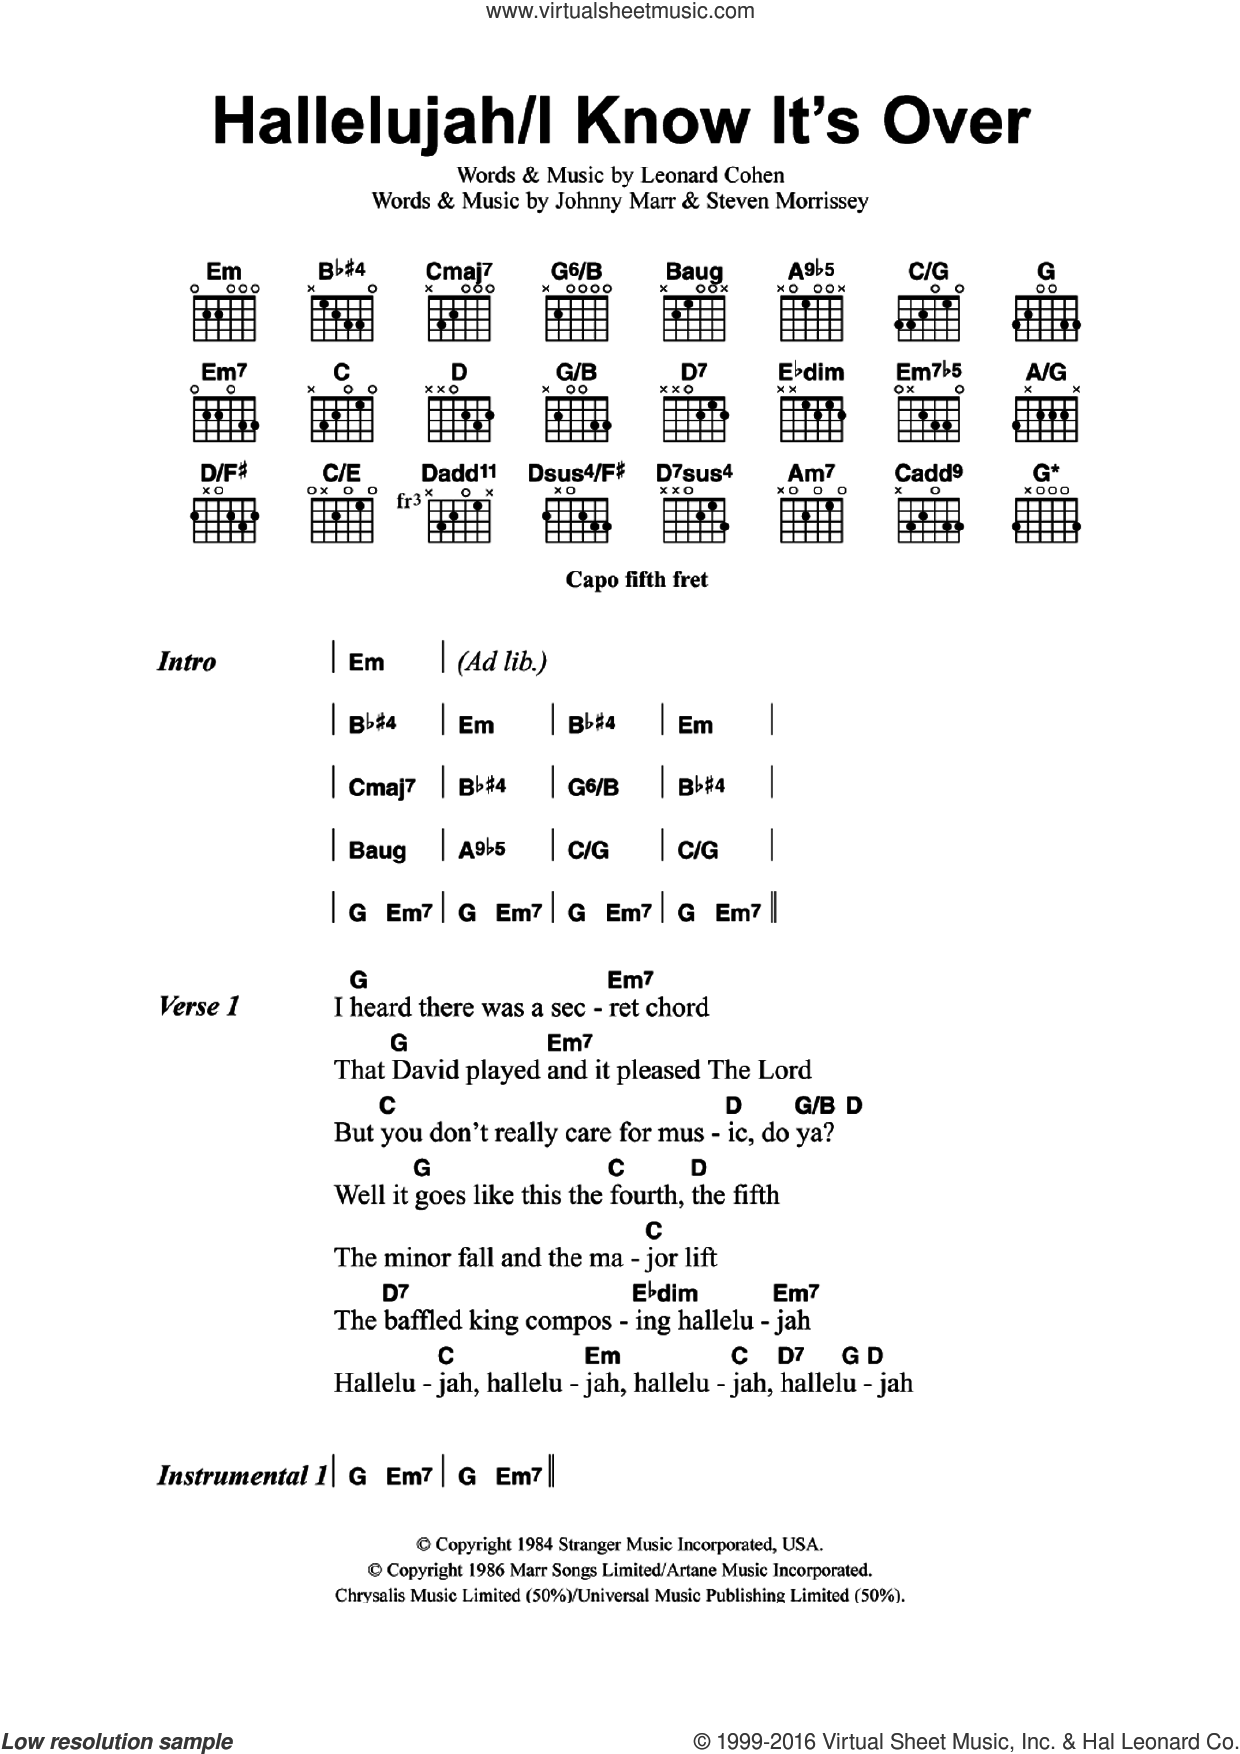 Hallelujah Guitar Chords For Beginners With Numbers